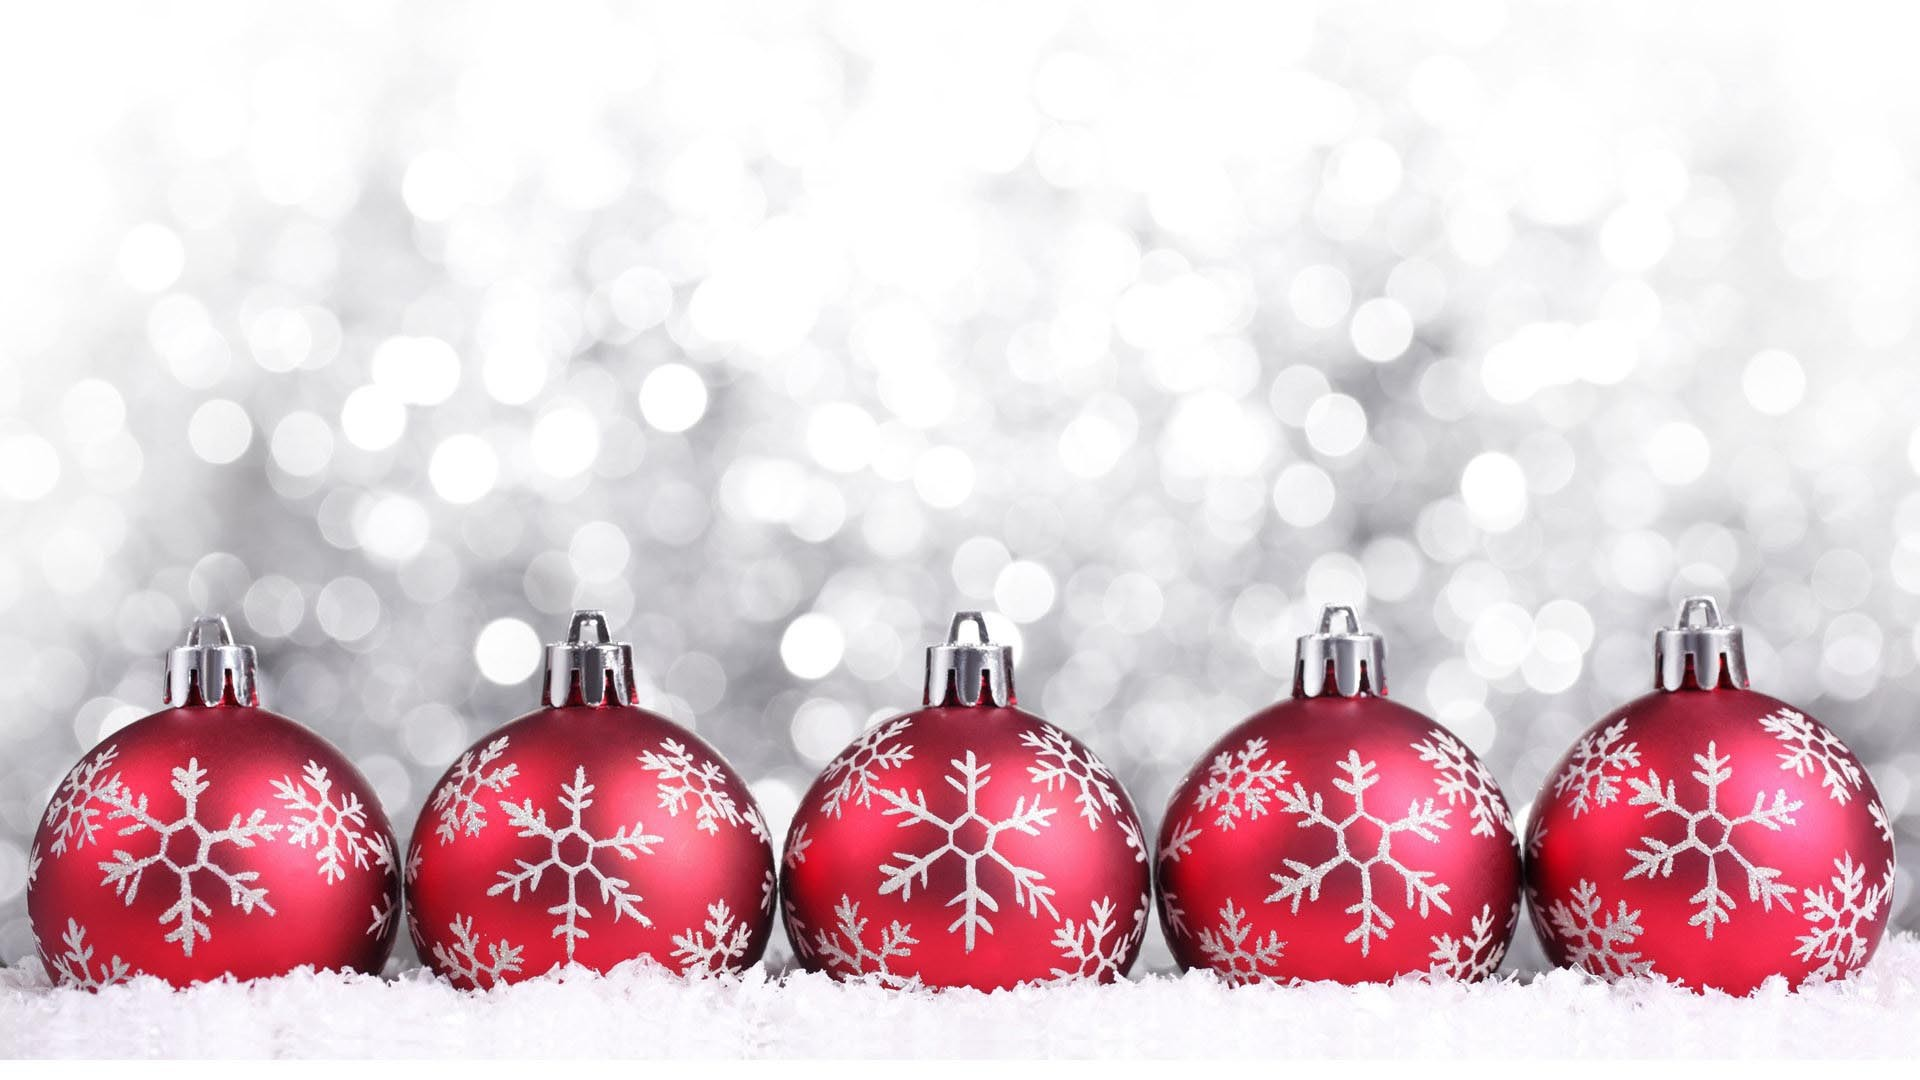 Christmas Background Tumblr Download Free Wallpapers For Desktop